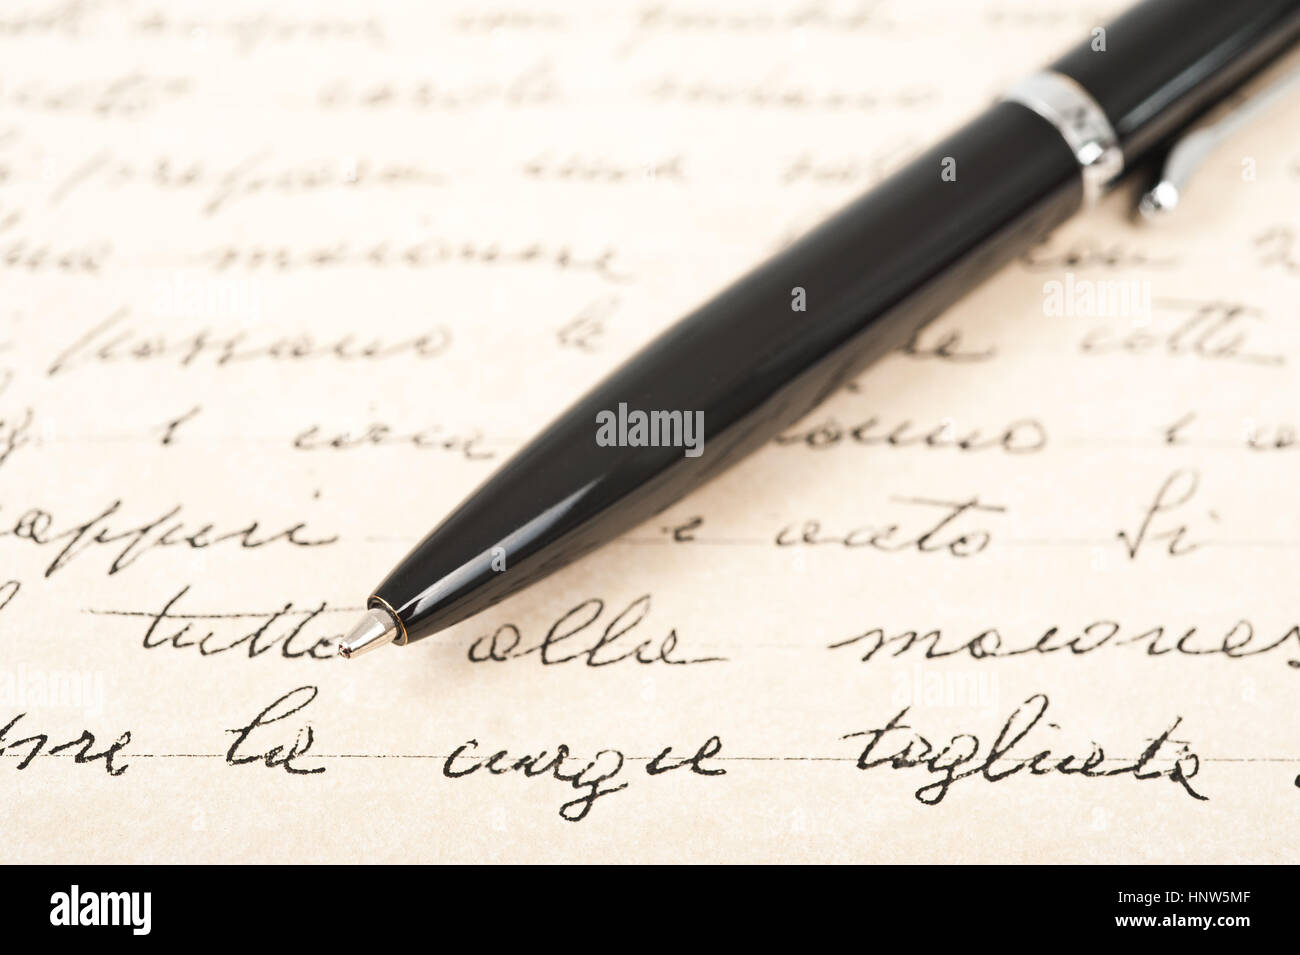 pen with hand written letter - Stock Image